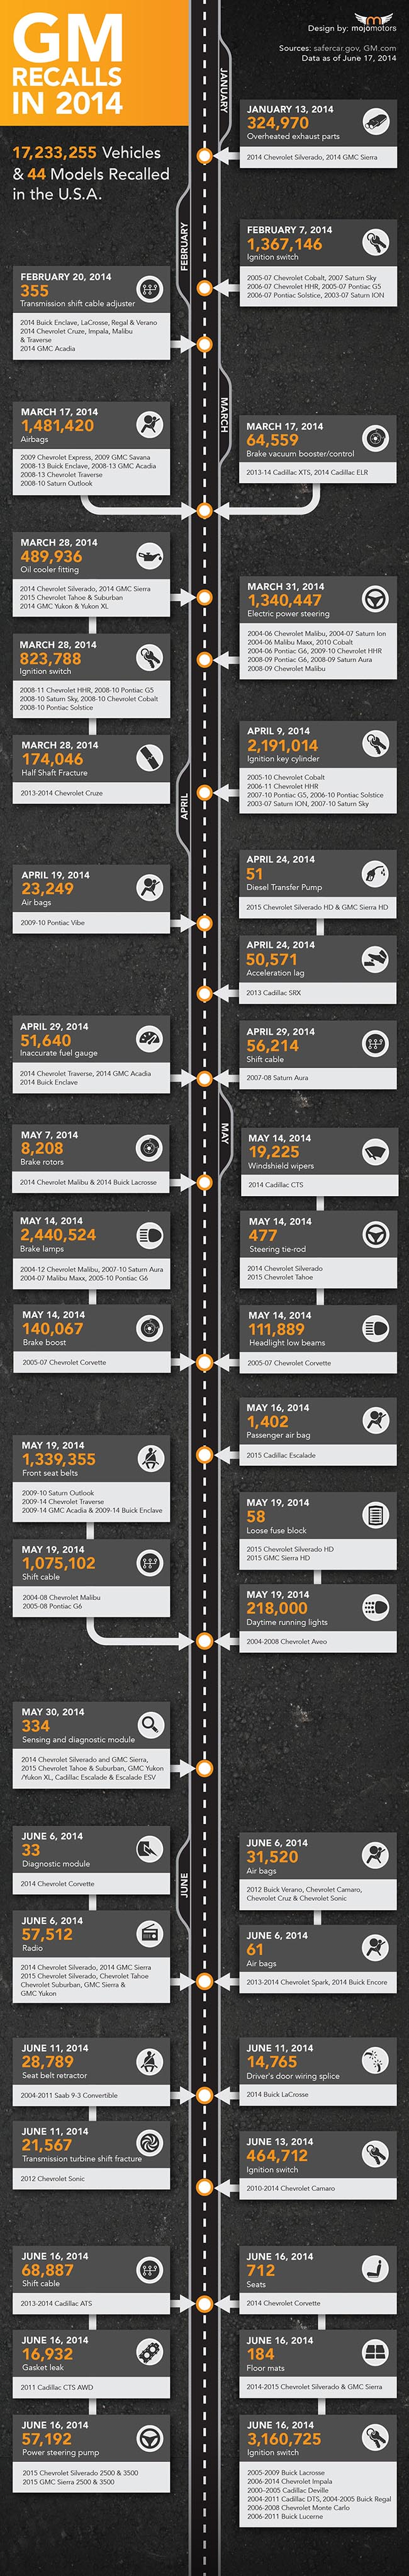 GM-Recalls-Infographic-2014-June-Update